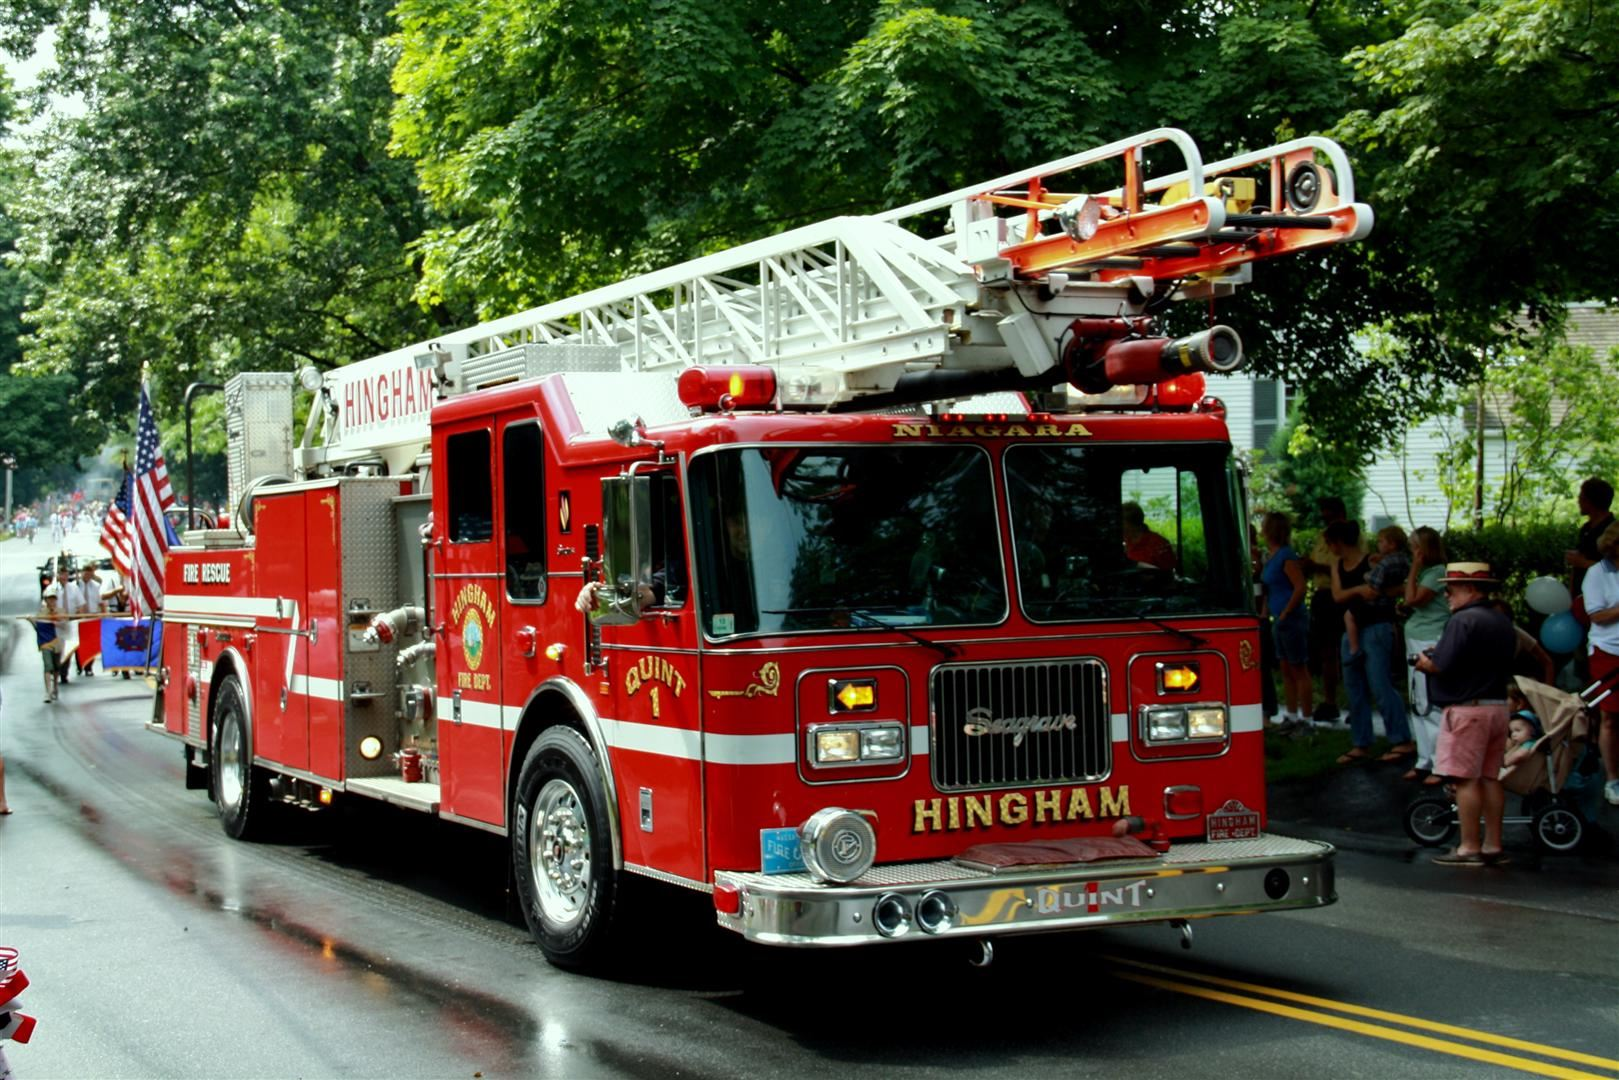 Quint 1 of the Hingham Fire Department